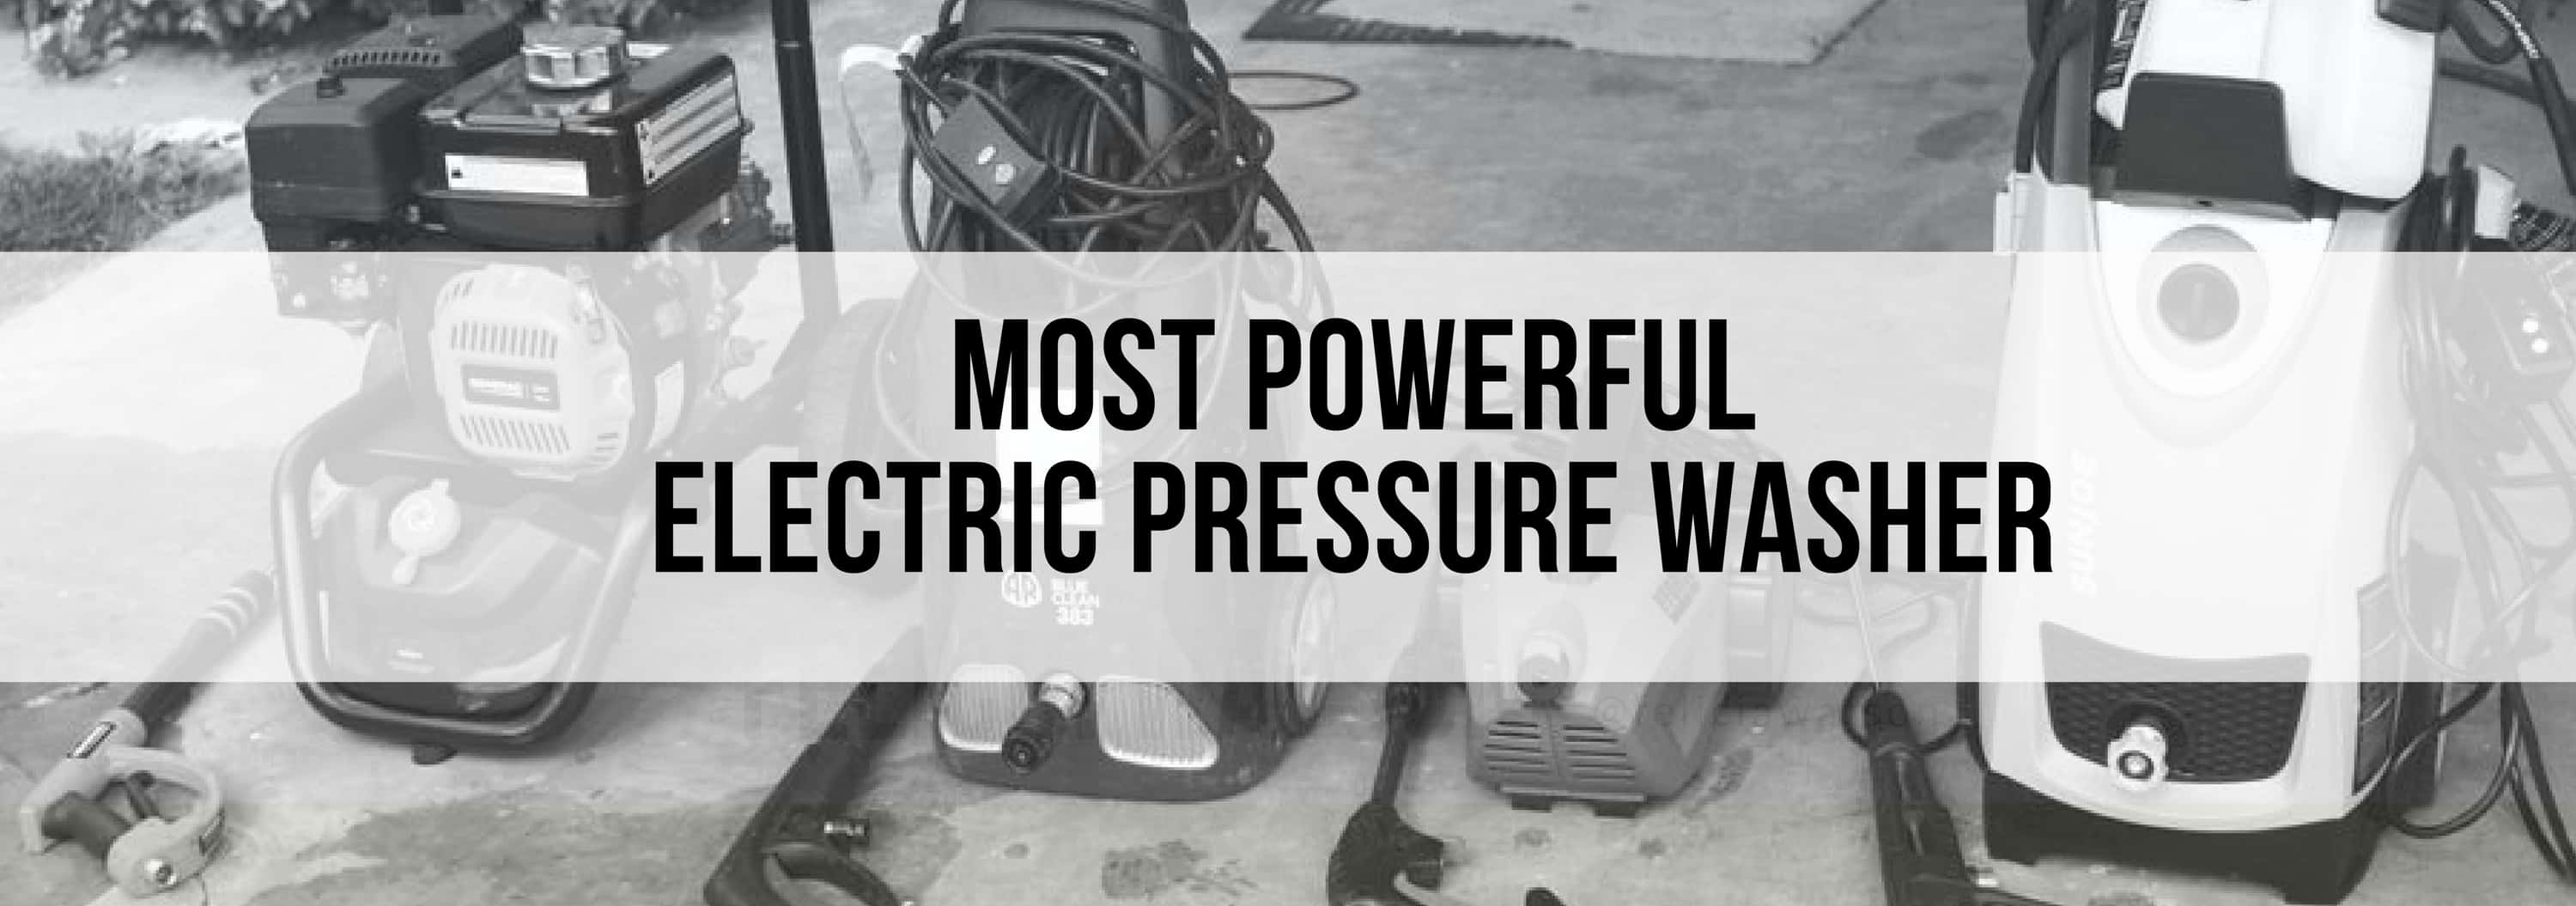 Most Powerful Electric Pressure Washer-2018: In-Depth 3000 PSI Analysis and What You Should Know